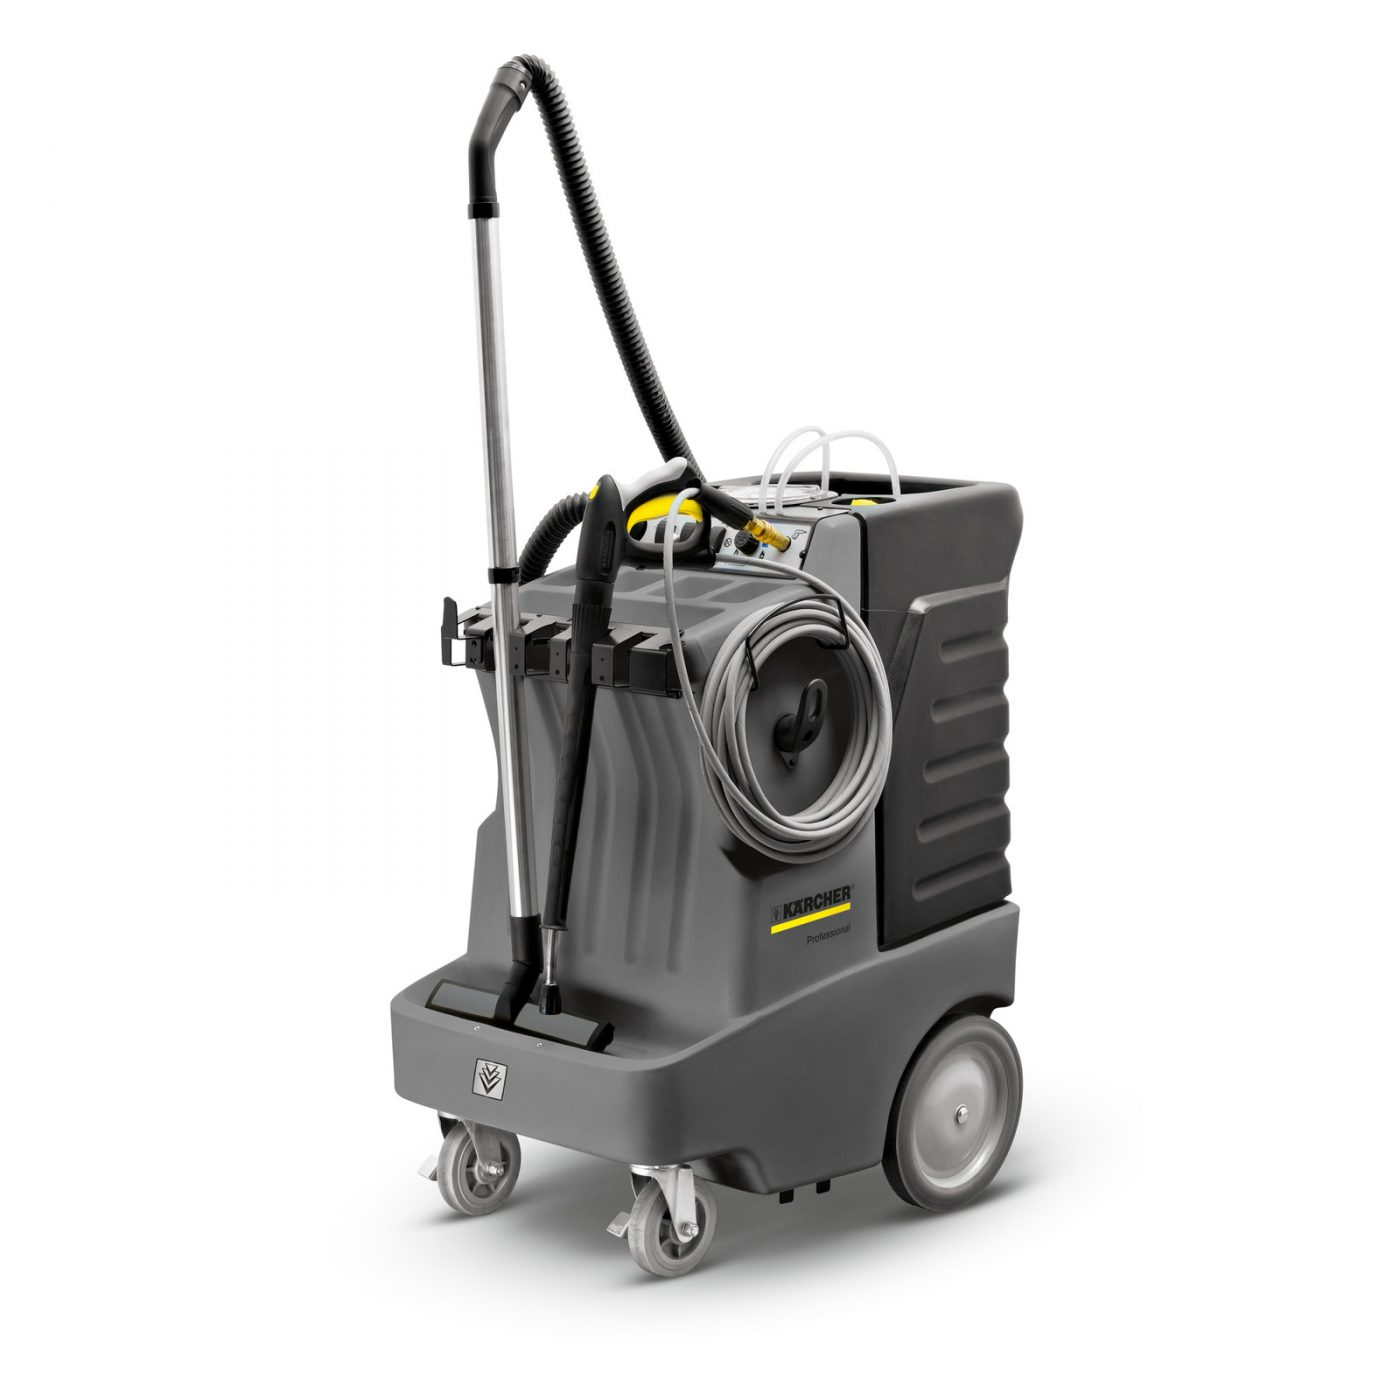 KARCHER 1.007-058.0 - 100/50 M High Pressure Washer